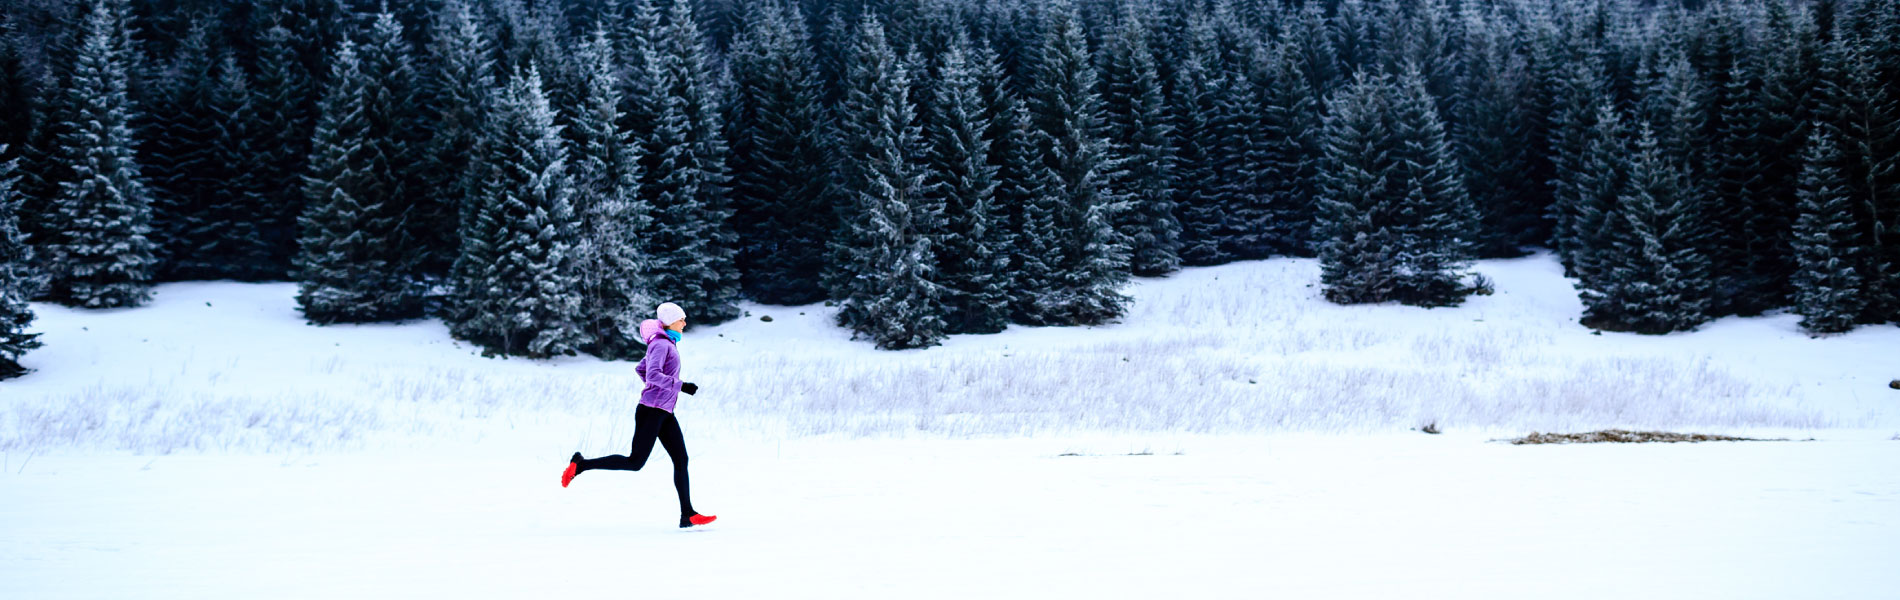 Activate_Dont_Hibernate_with_Winter_Activities_to_Keep_You_Fit_1900x600.jpg